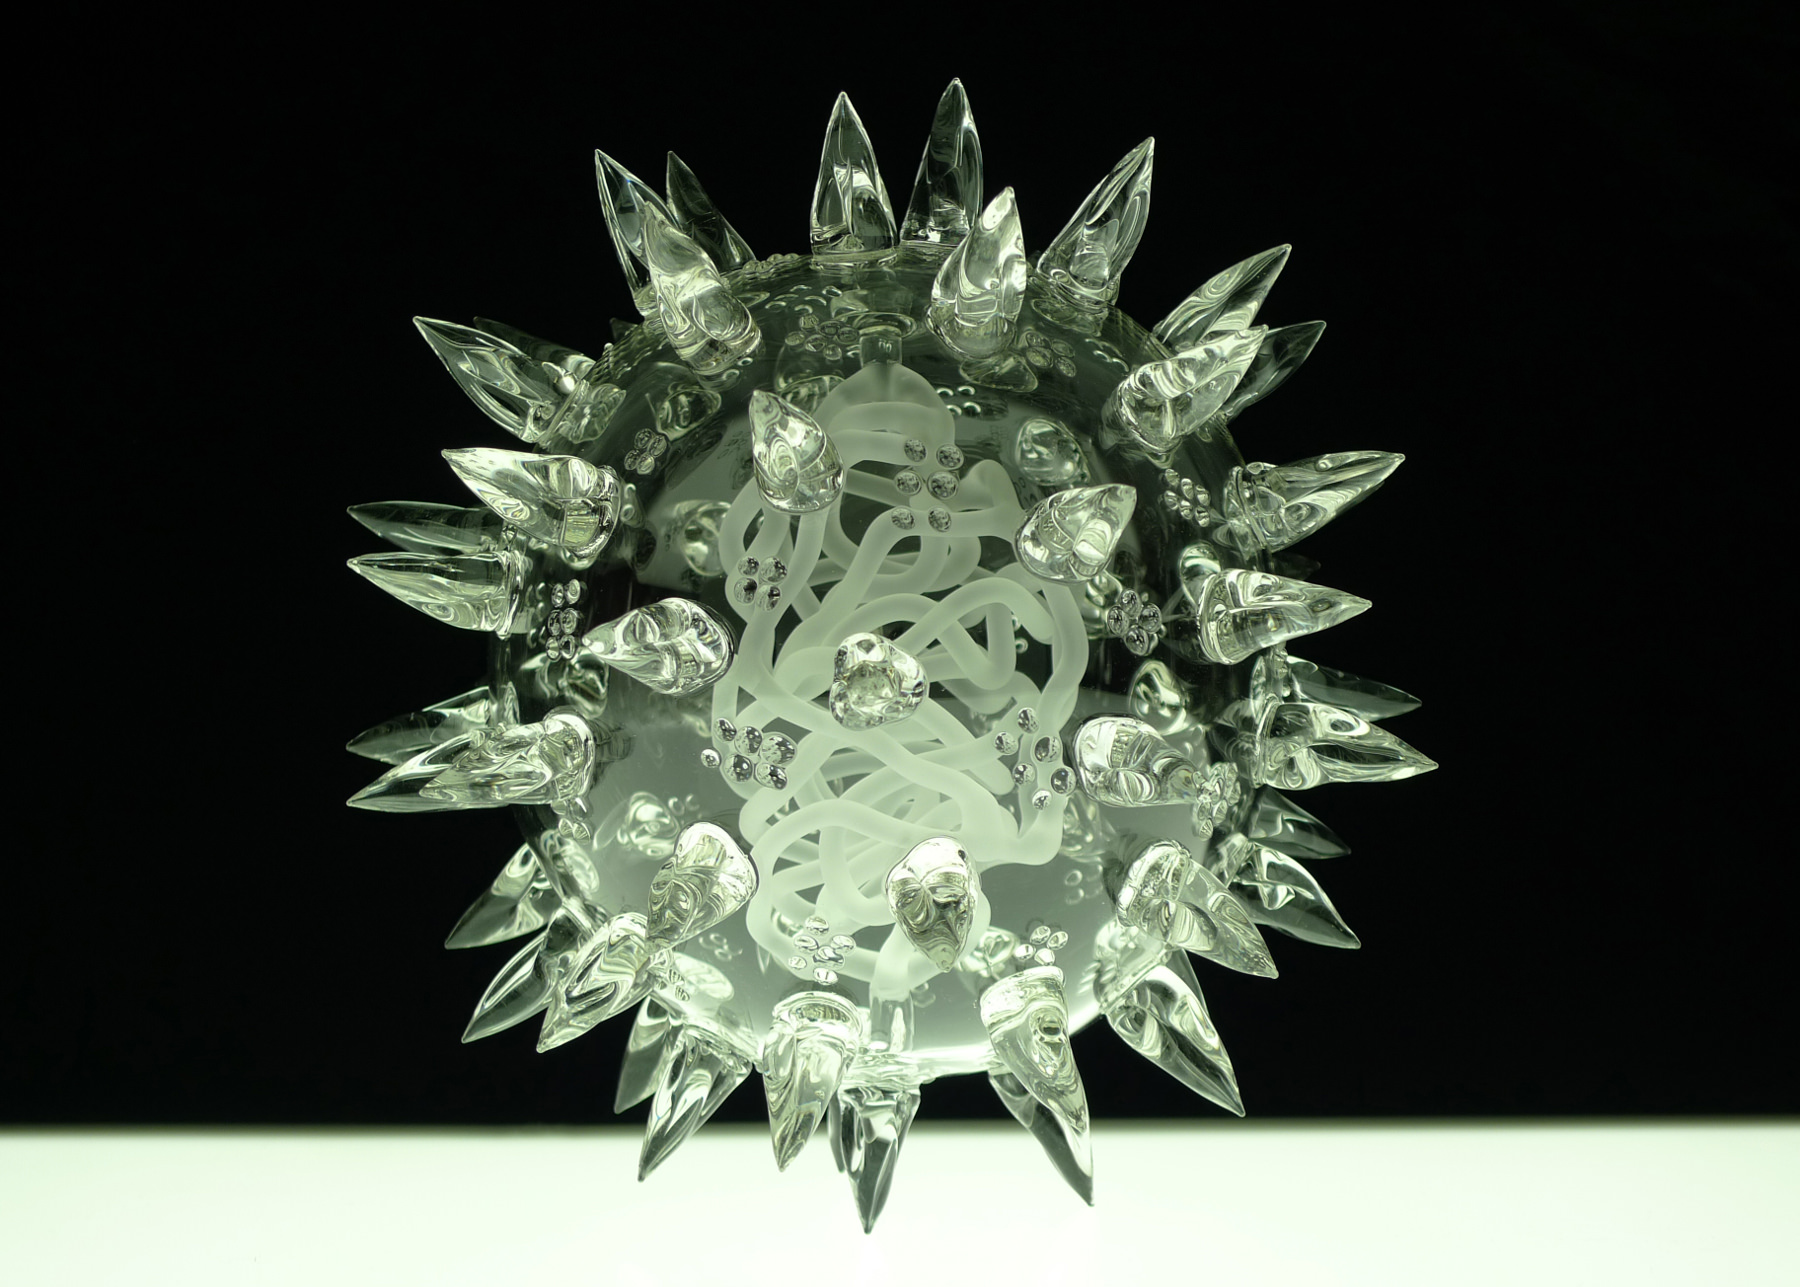 Luke Jerram - Untitled Future Mutation